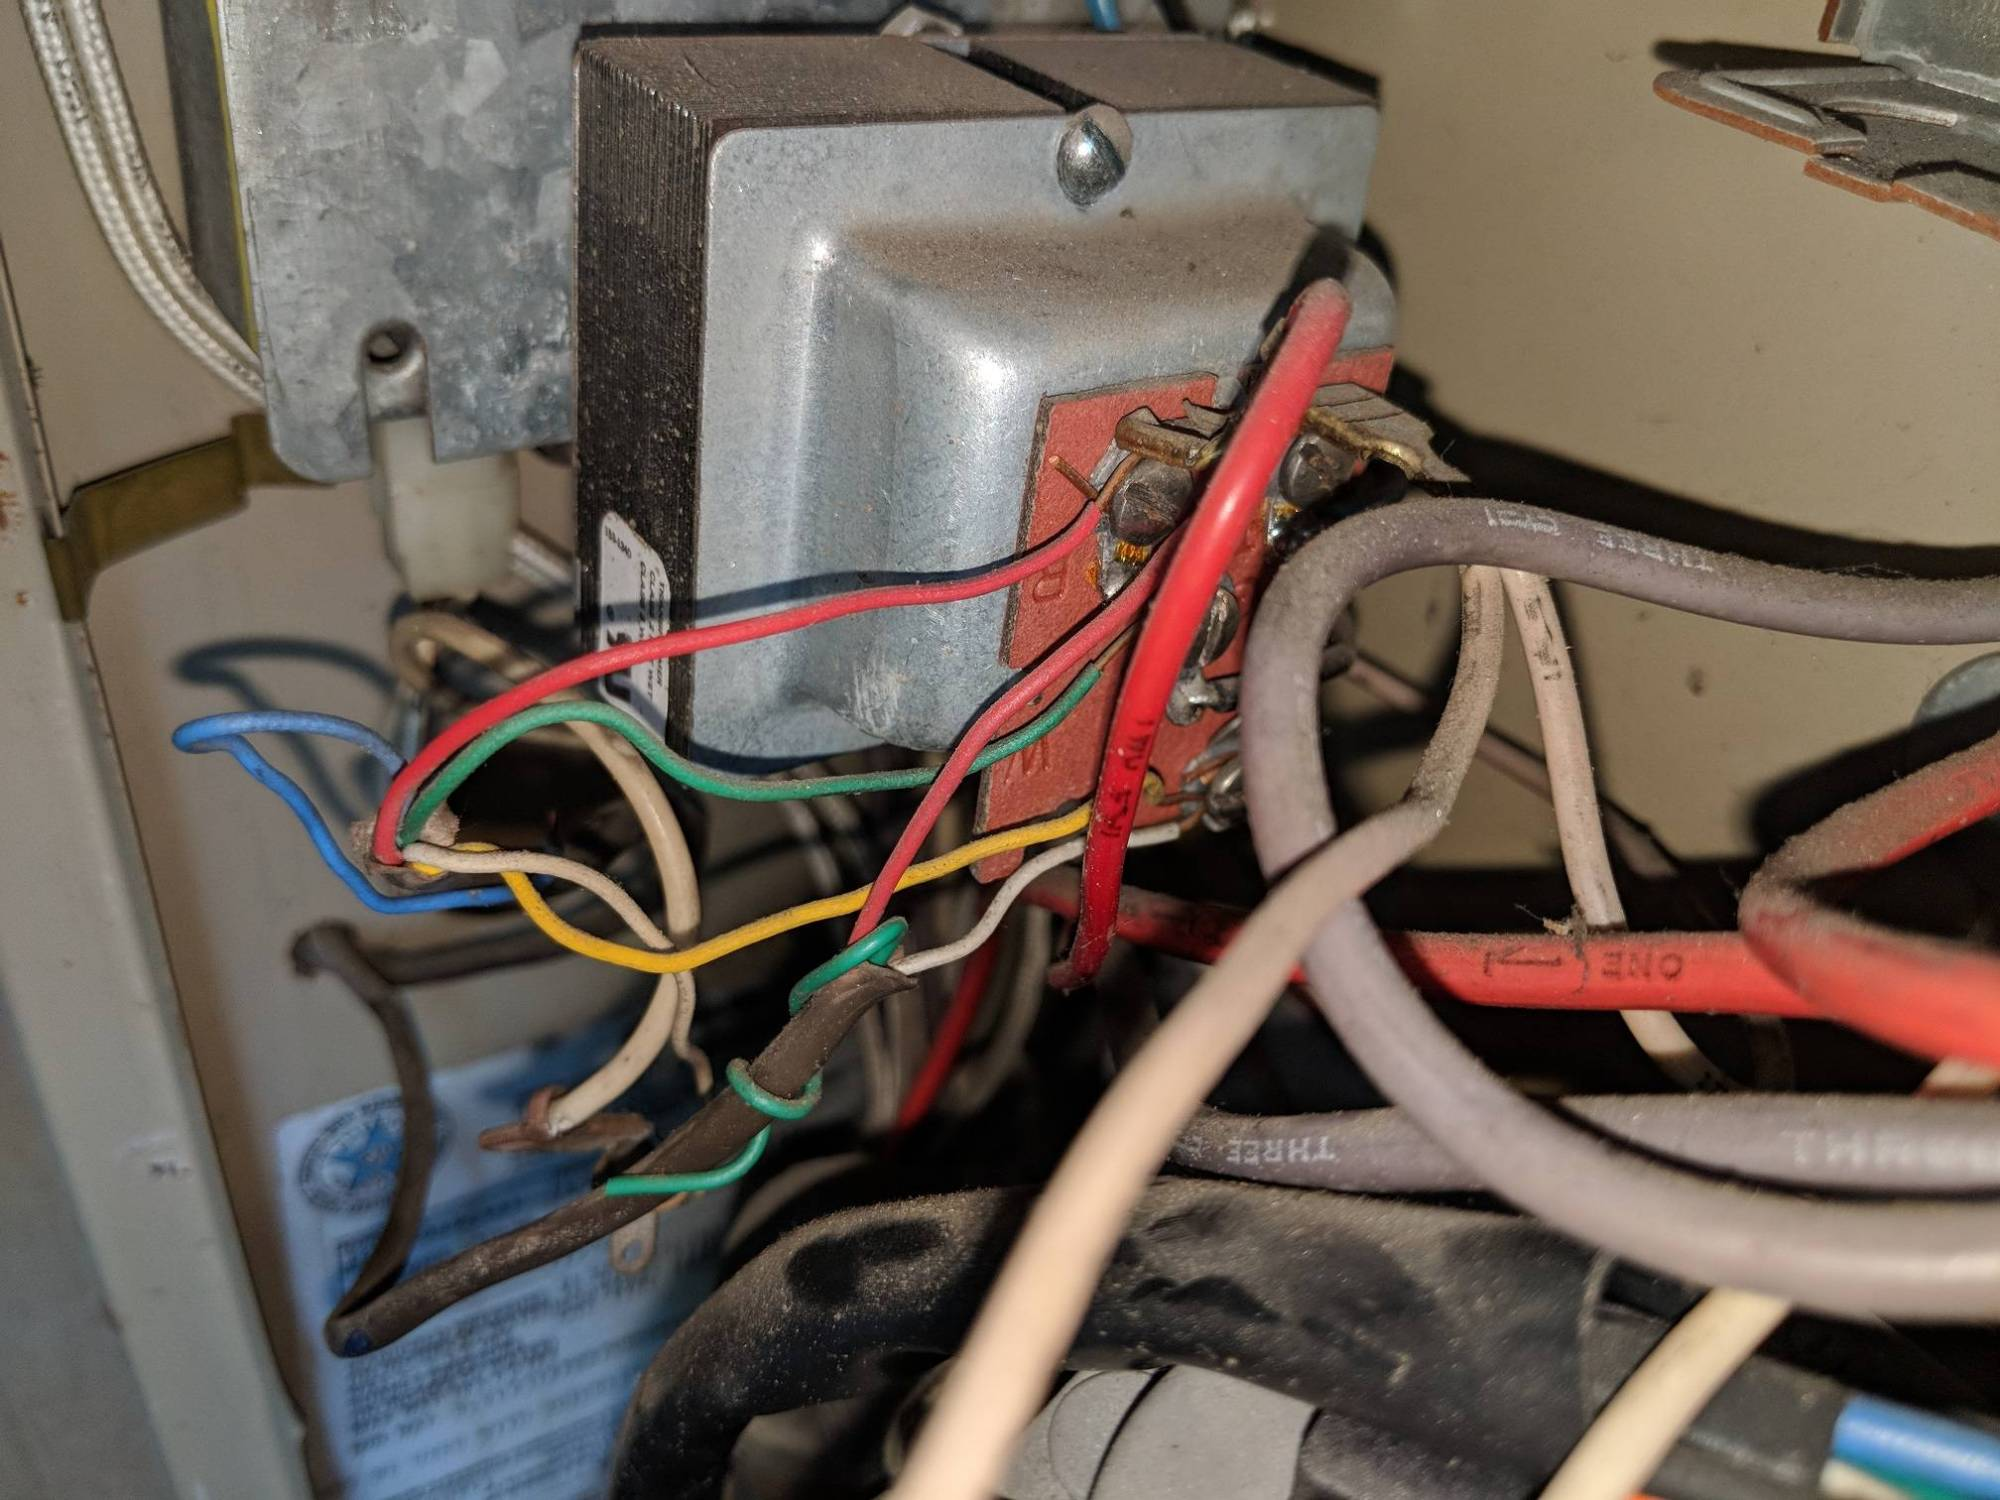 hight resolution of the wire bundle with the blue wire is the one coming from the thermostat and the wire bundle with the wrapped unused green is coming from the ac unit i